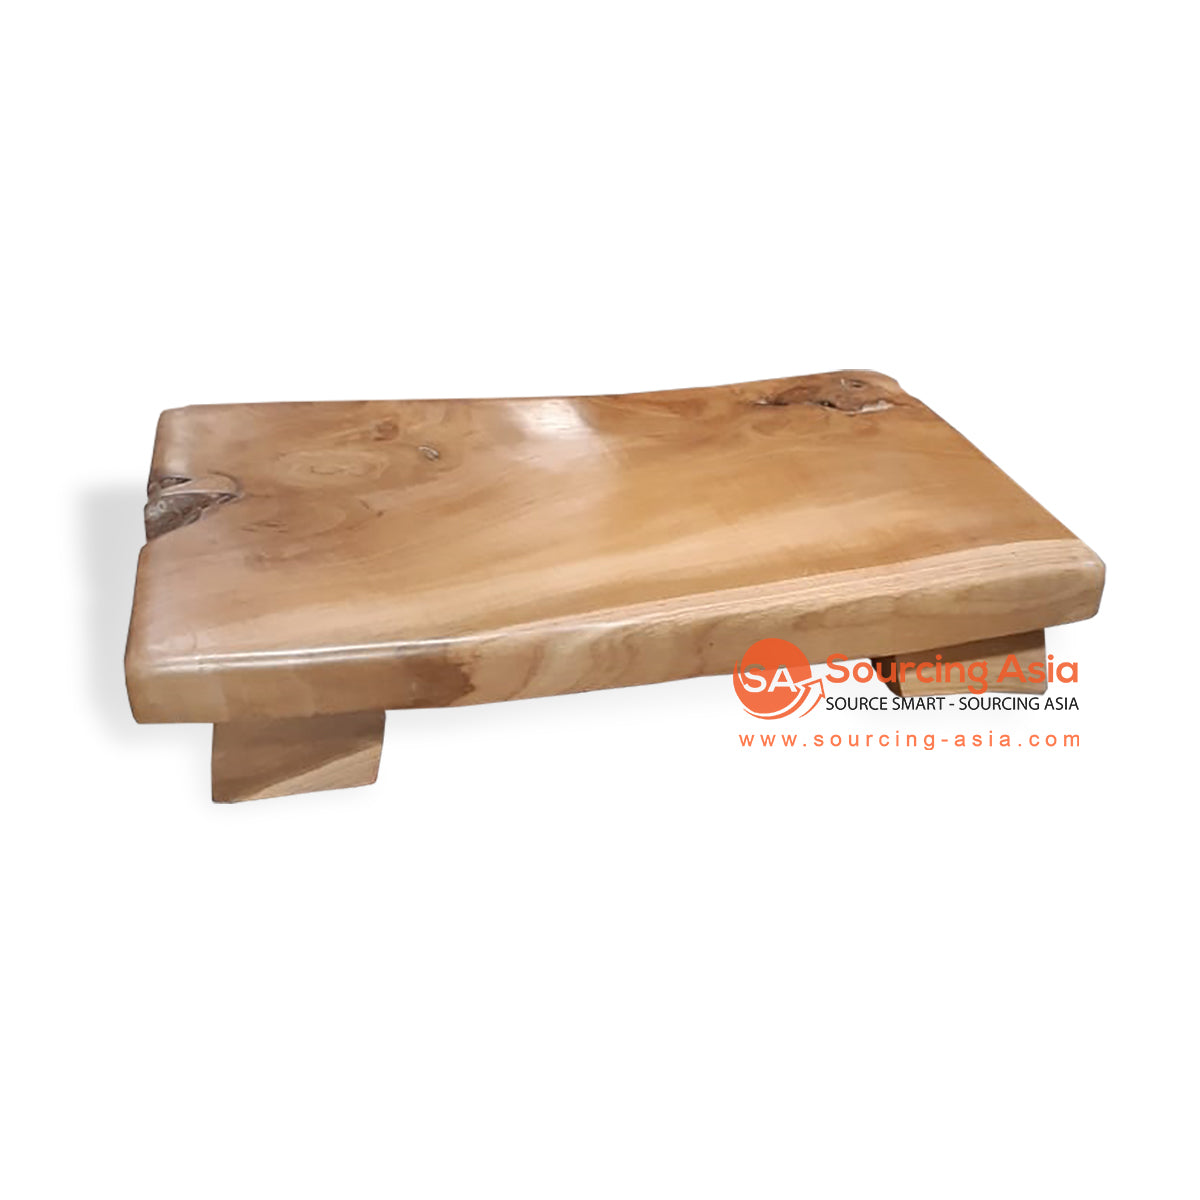 BMW137 TEAK WOOD CHOPPING BOARD